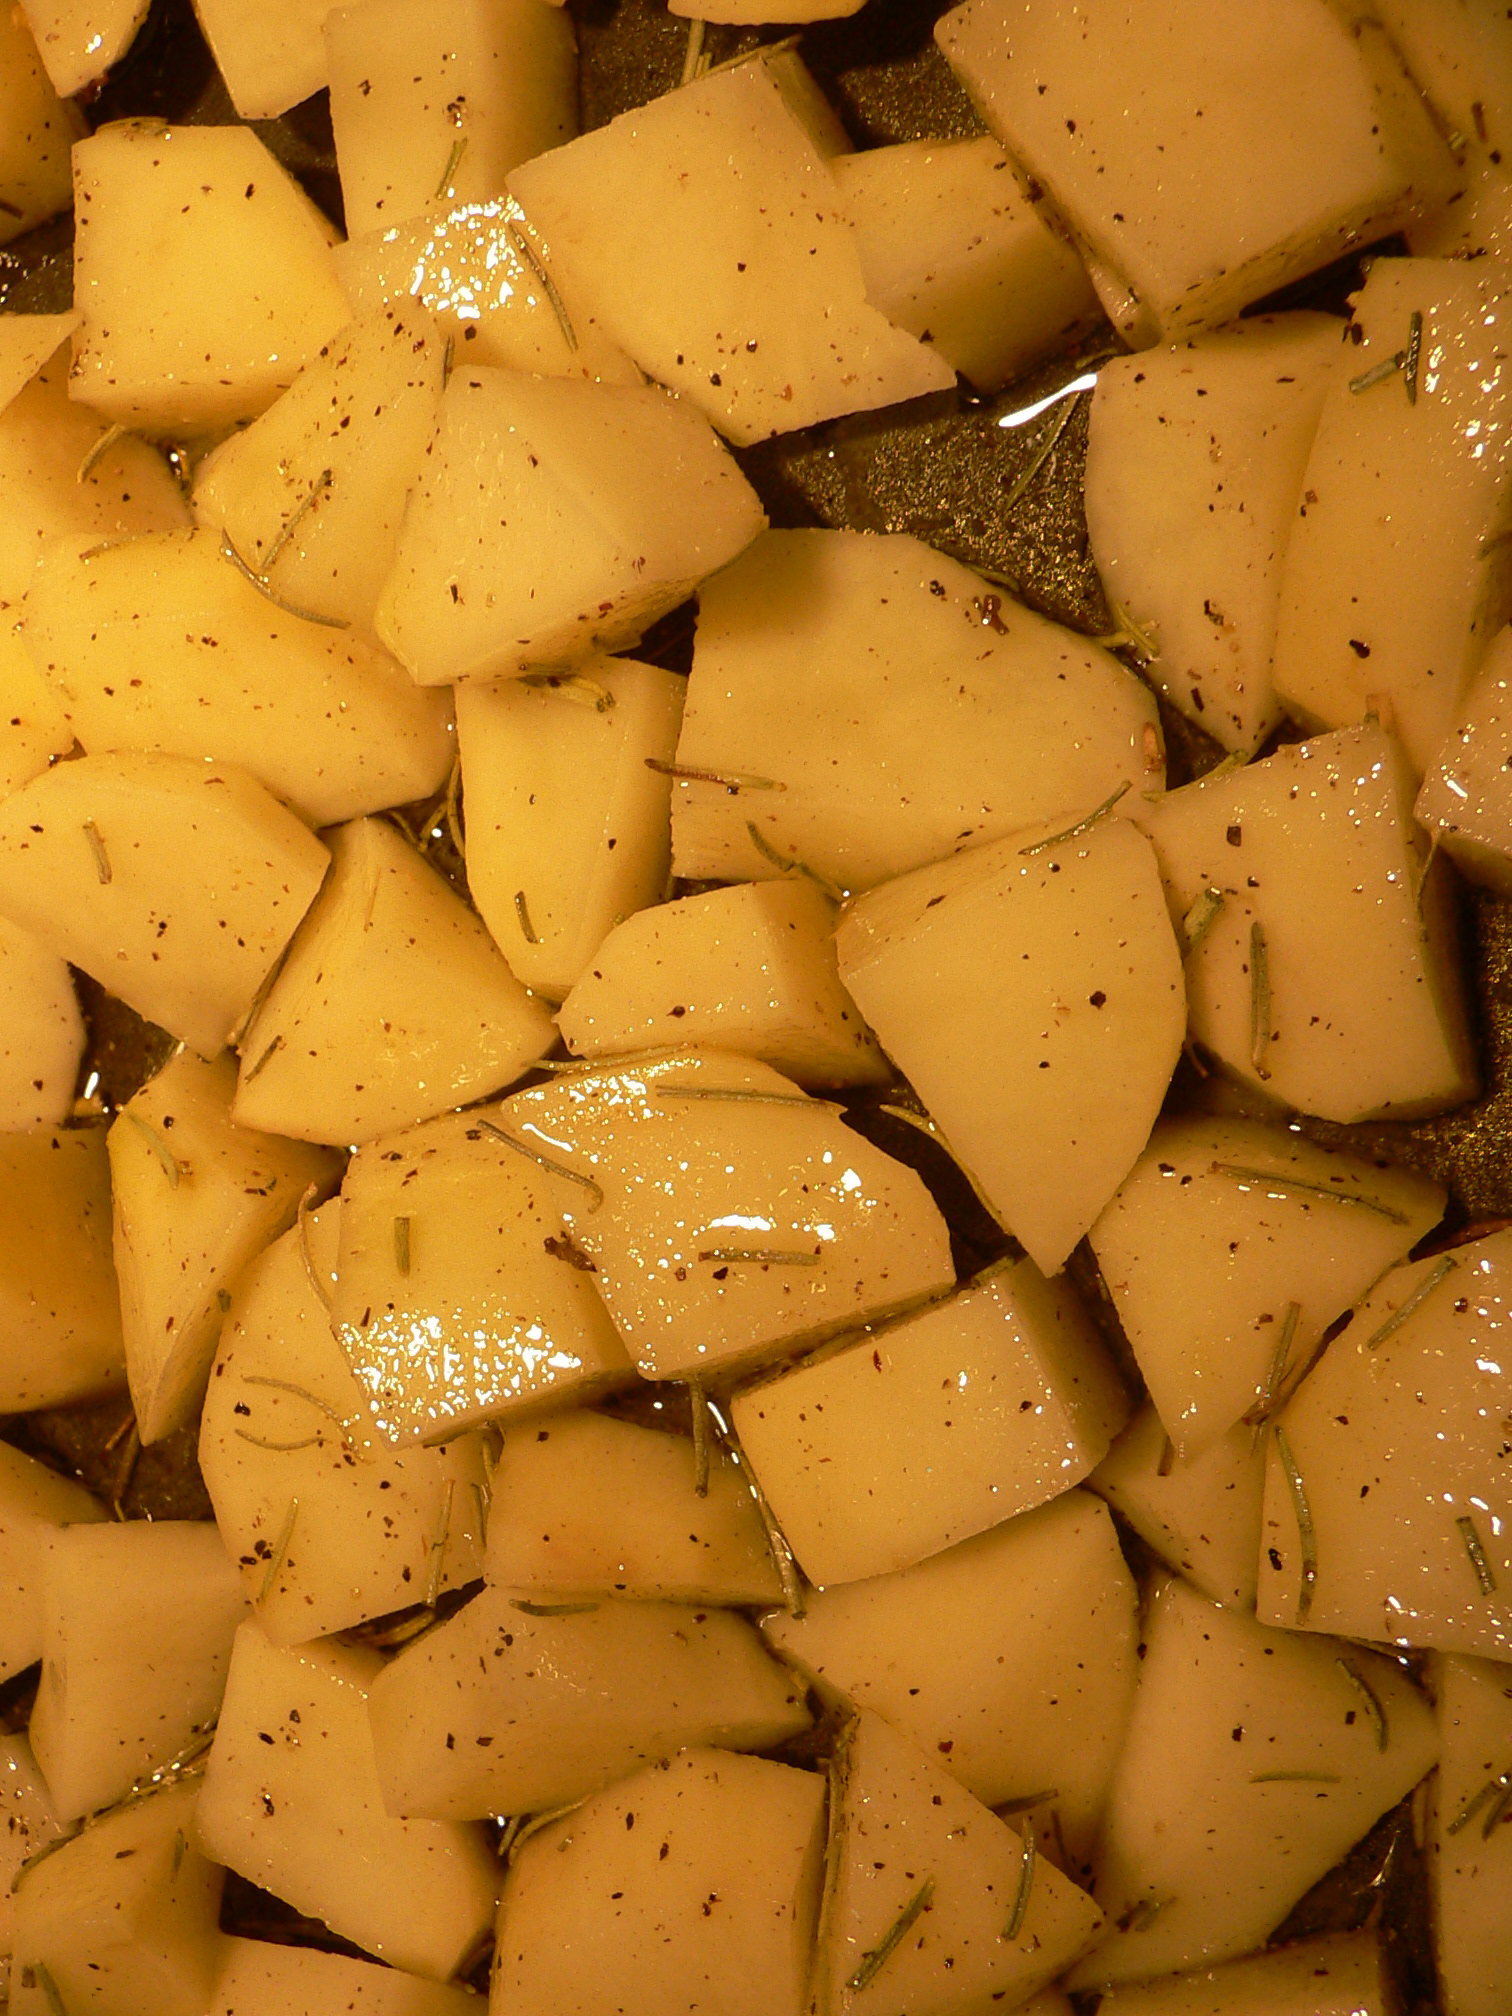 What type of potatoes can a diabetic eat